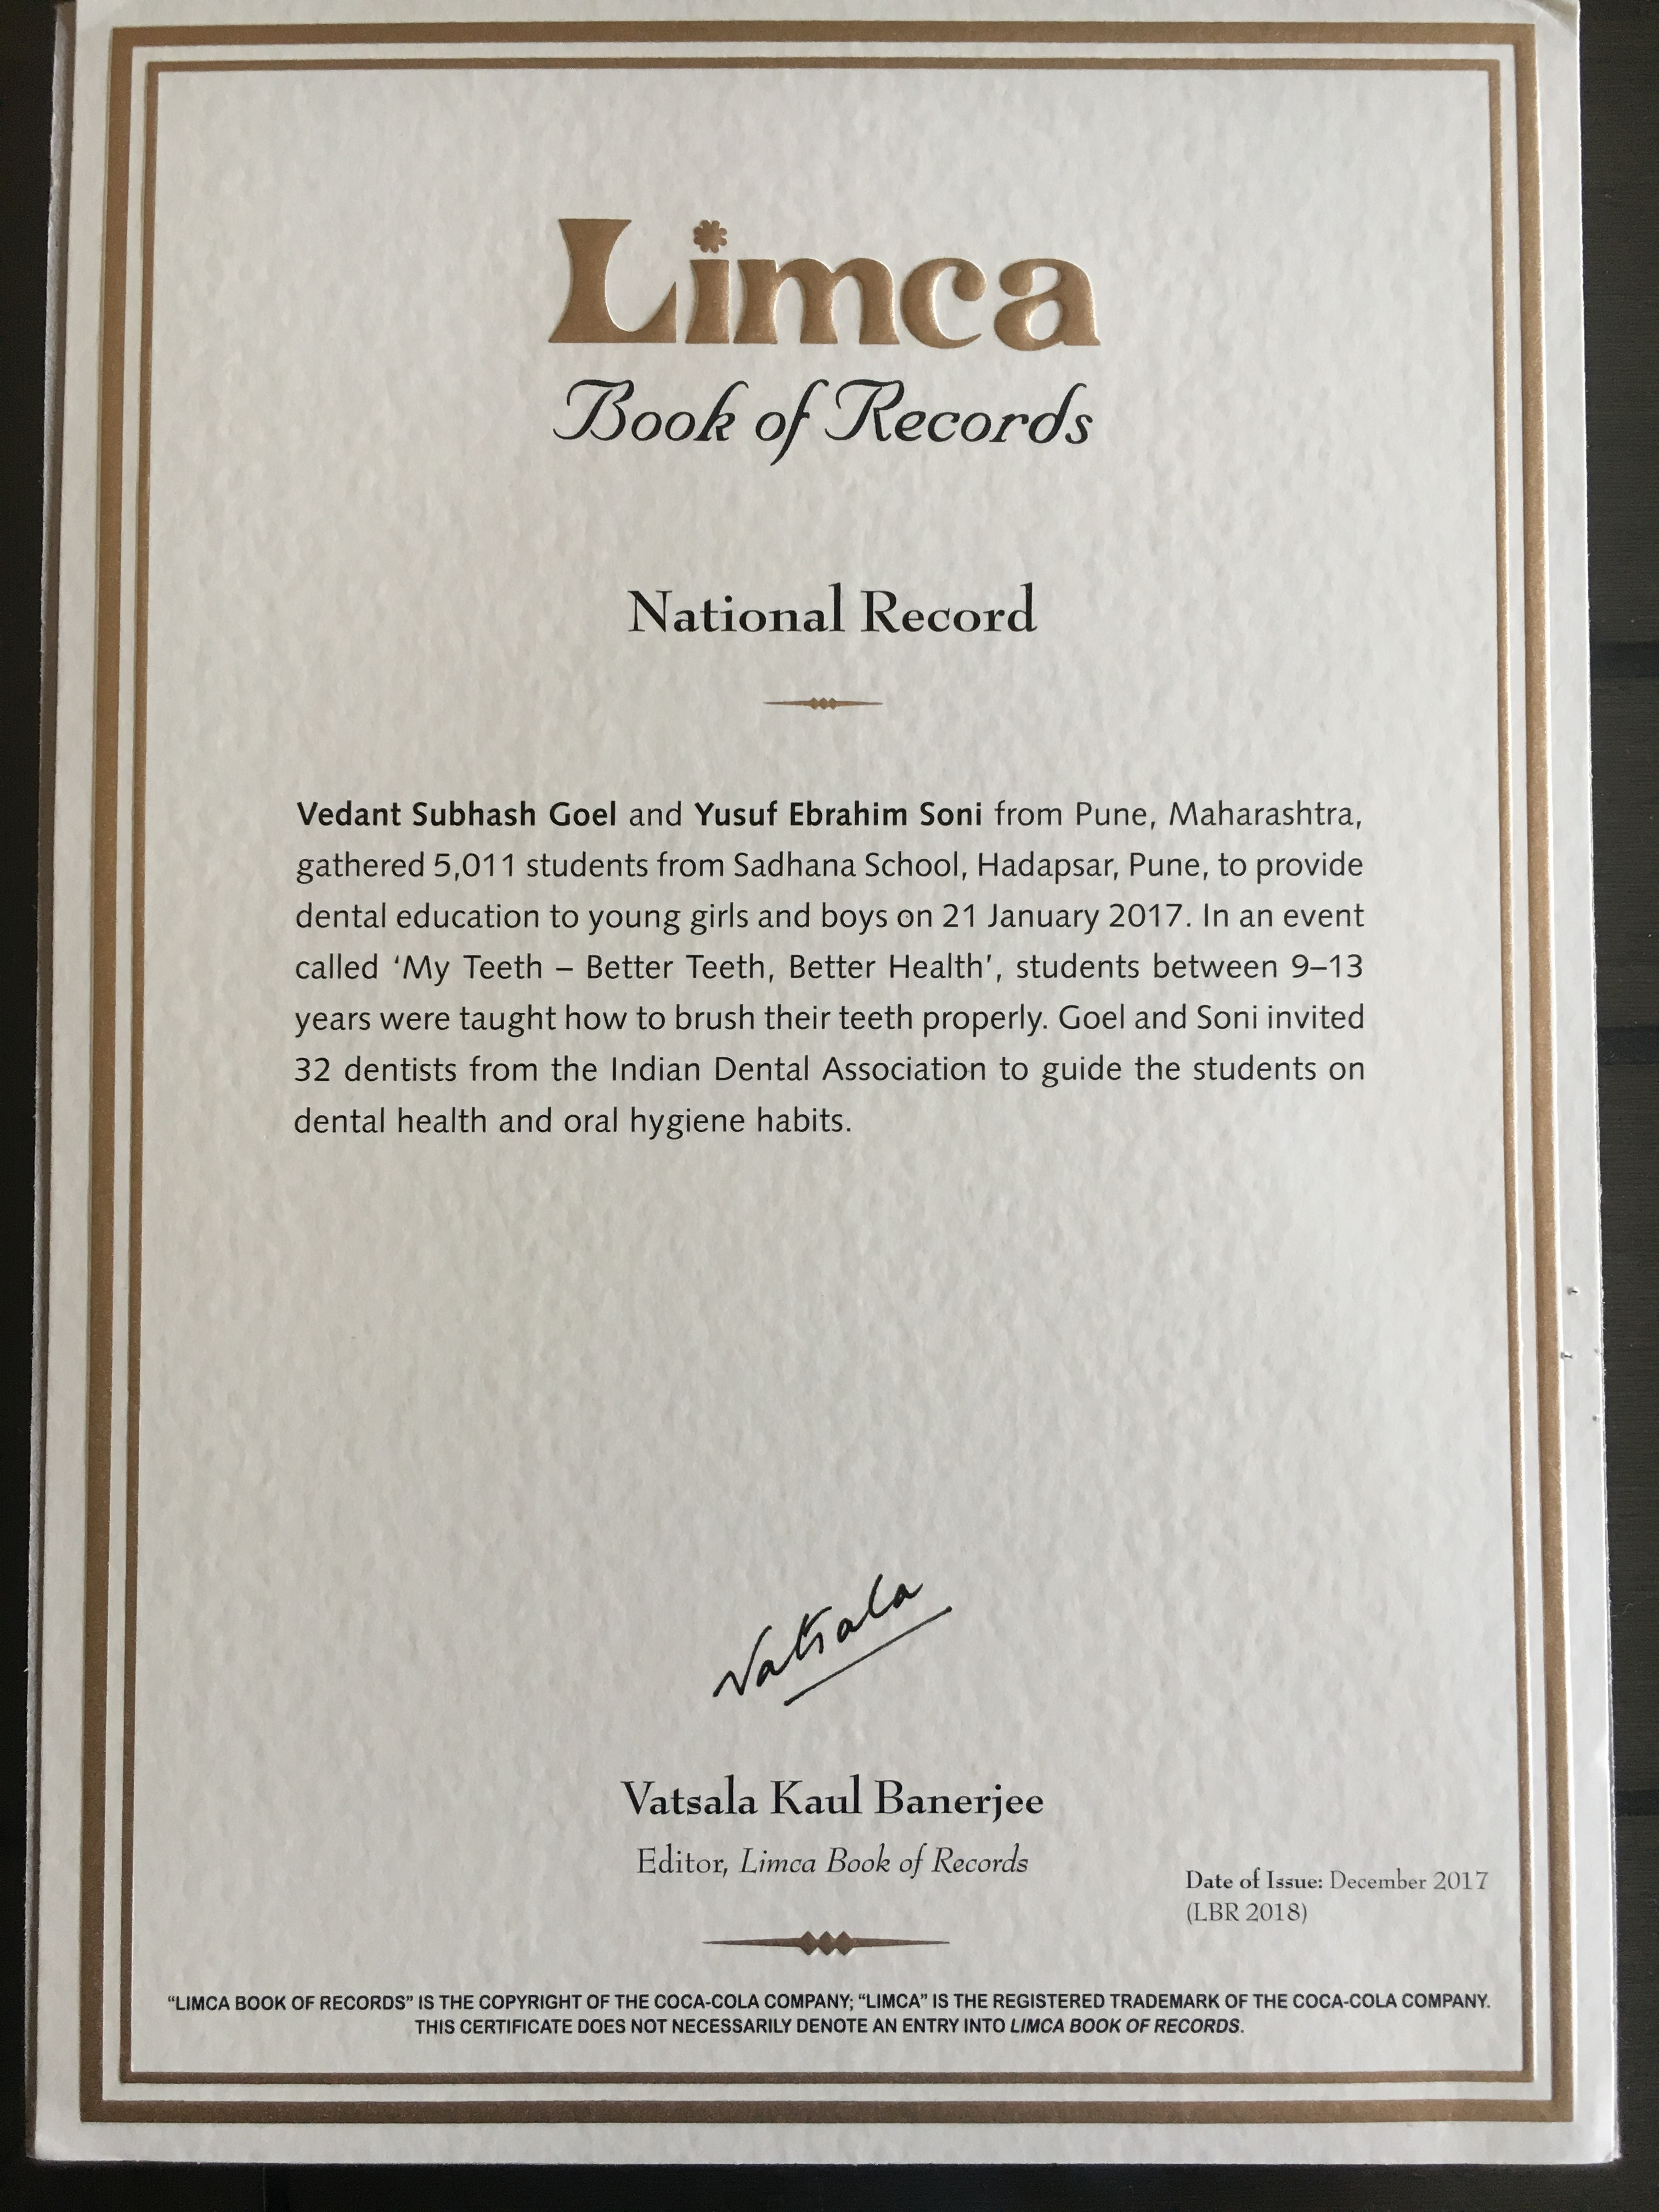 Limca Book of Record for 'My Teeth – Better Teeth, Better Health' Campaign